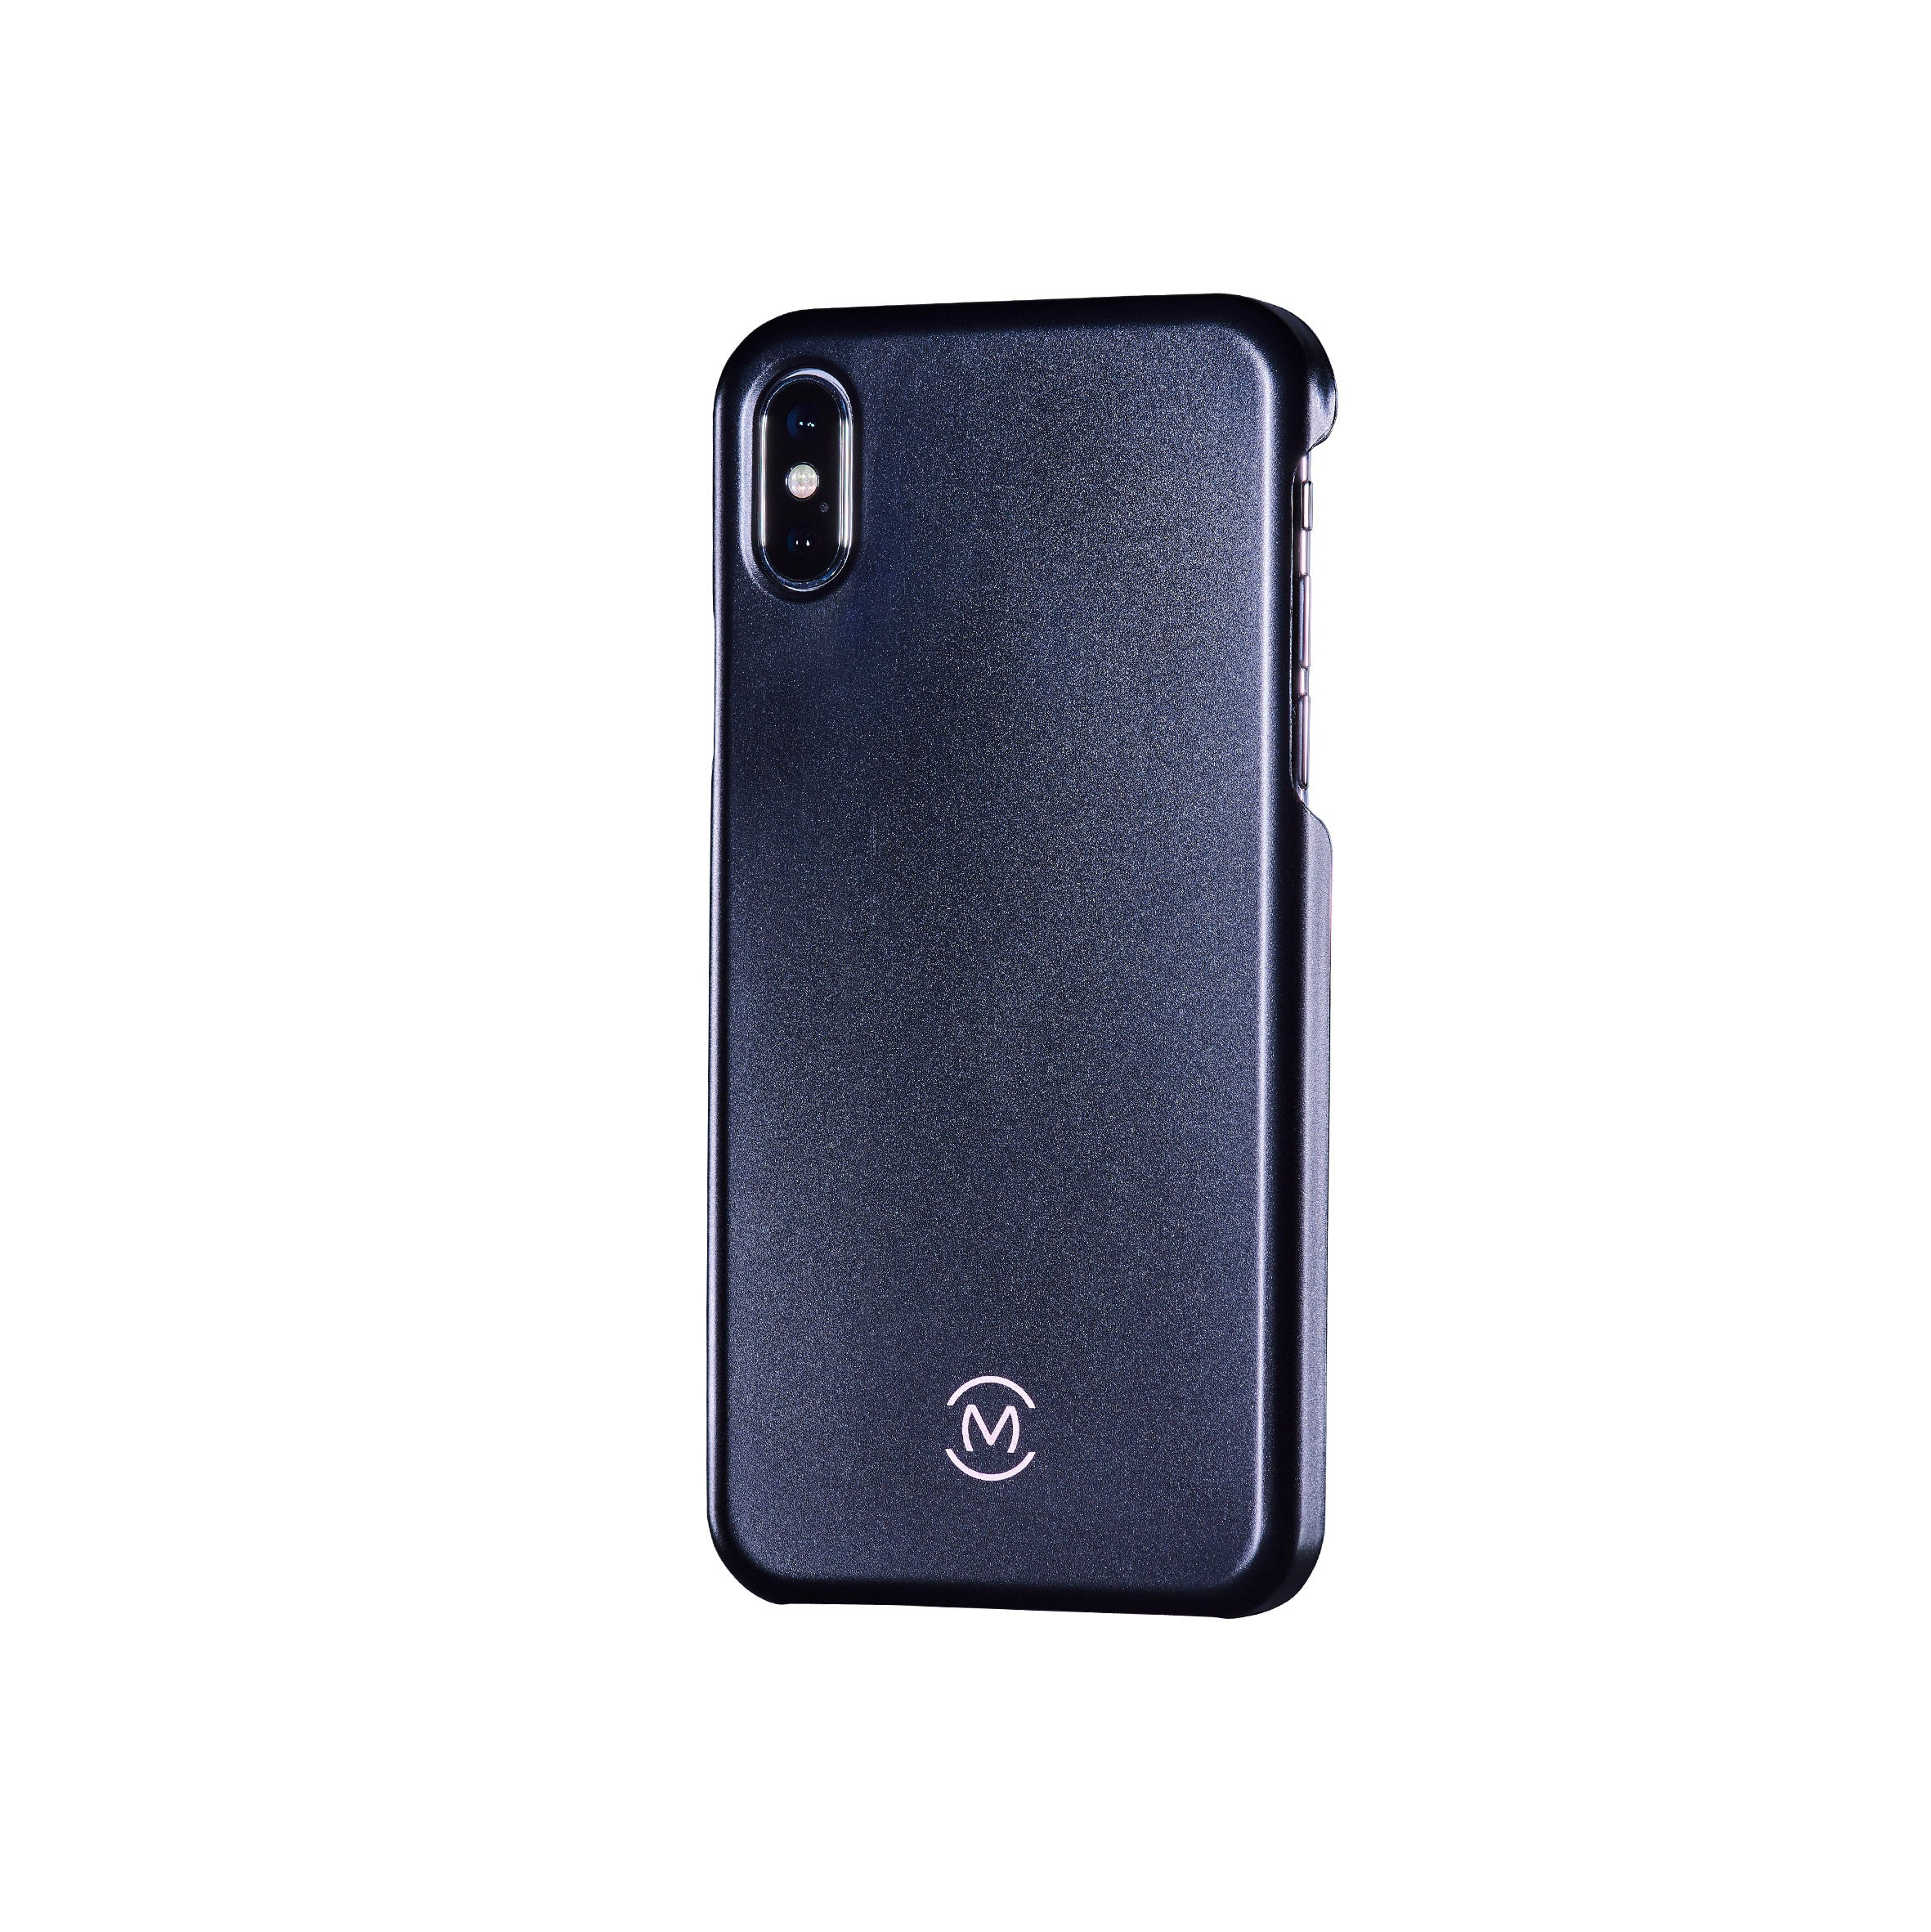 Black Matte Obsidian Phone Case by Movement for iPhone X (Left)